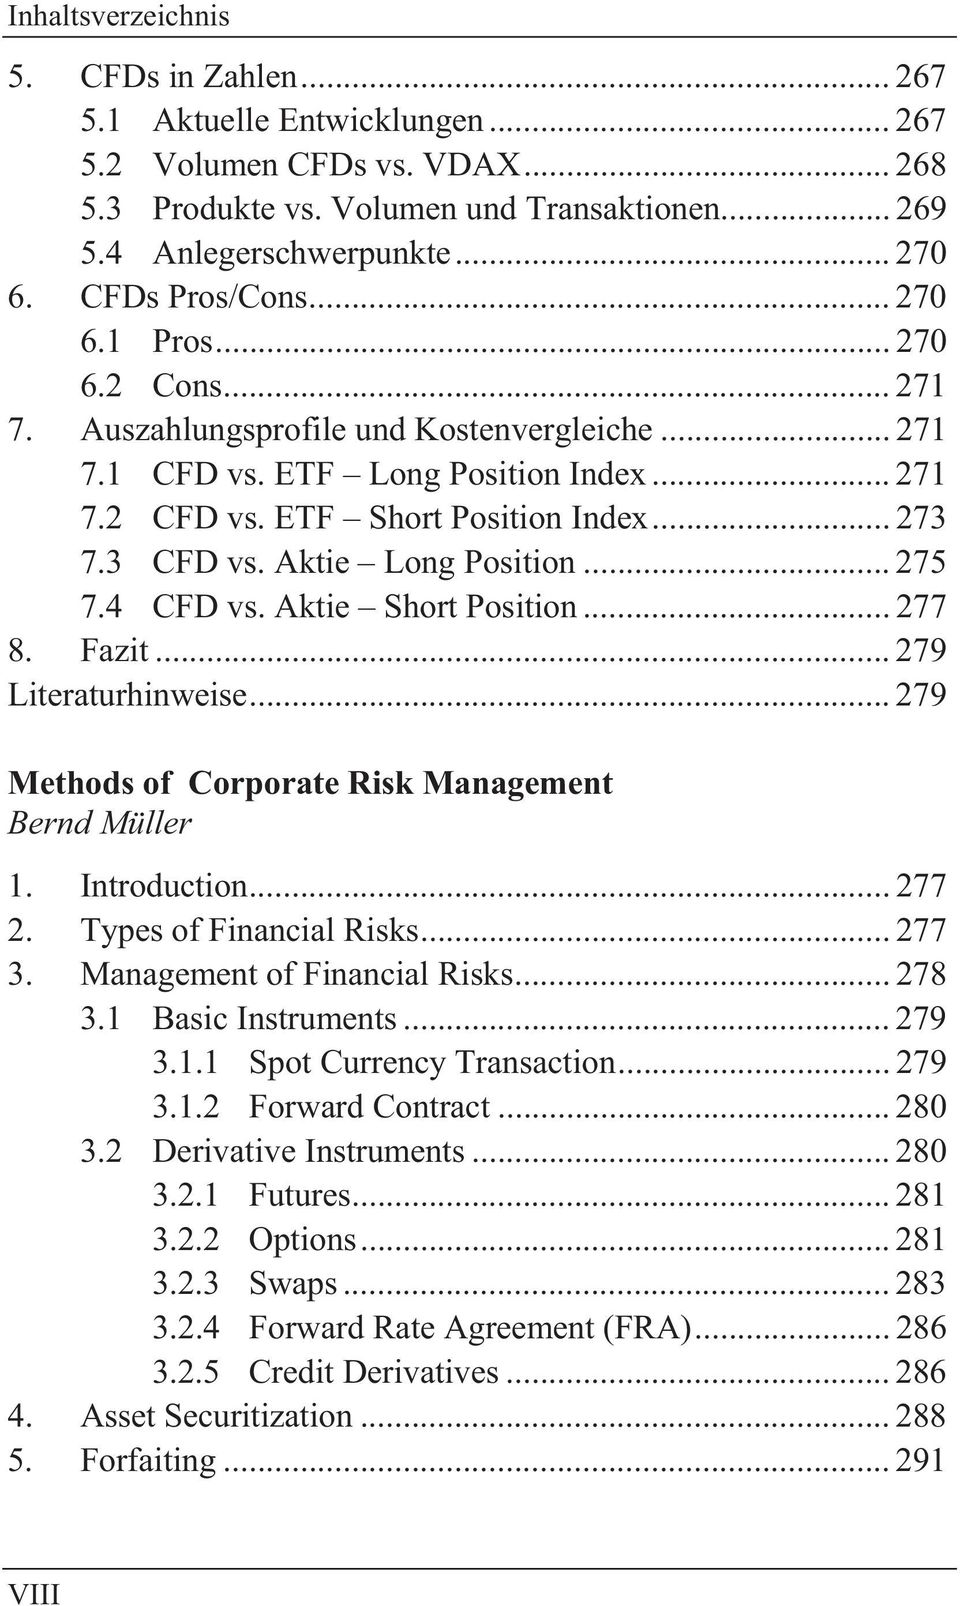 4 CFD vs. Aktie Short Position... 277 8. Fazit... 279 Literaturhinweise... 279 Methods of Corporate Risk Management Bernd Müller 1. Introduction... 277 2. Types of Financial Risks... 277 3.